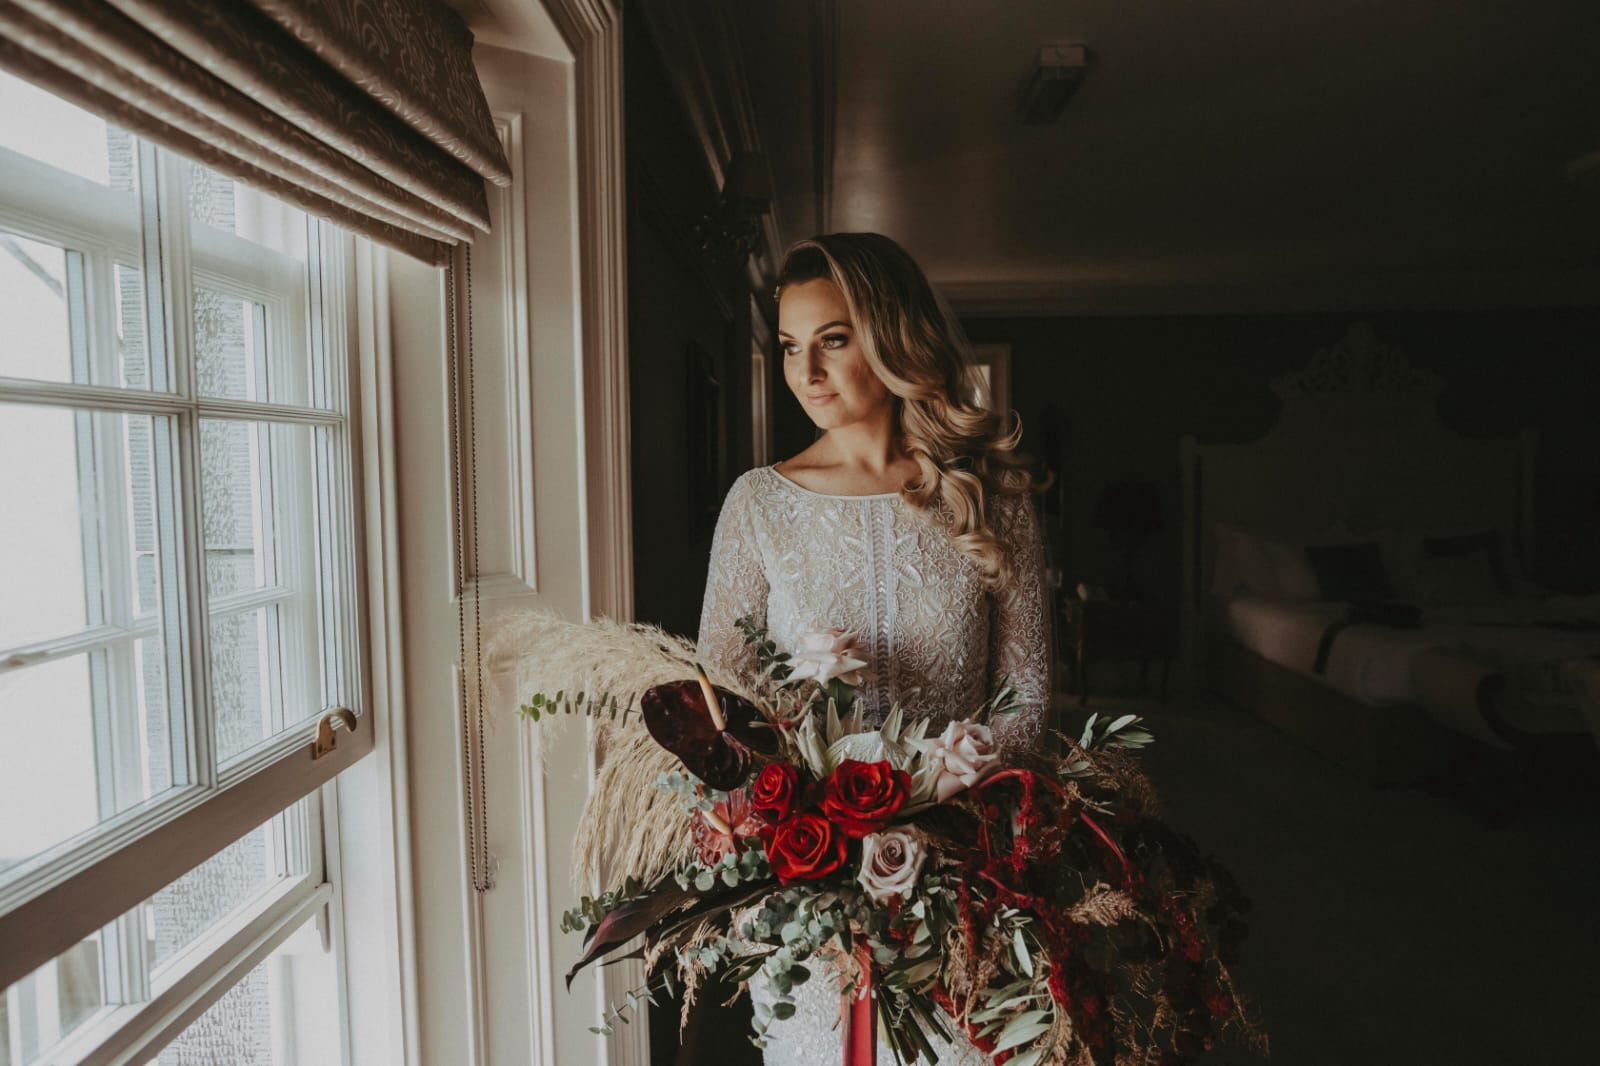 Clonabreany house wedding, meath wedding, clonbreany bride, australian bride, hollywood waves, soft curls, bridal hair, bridal makeup, glam bride